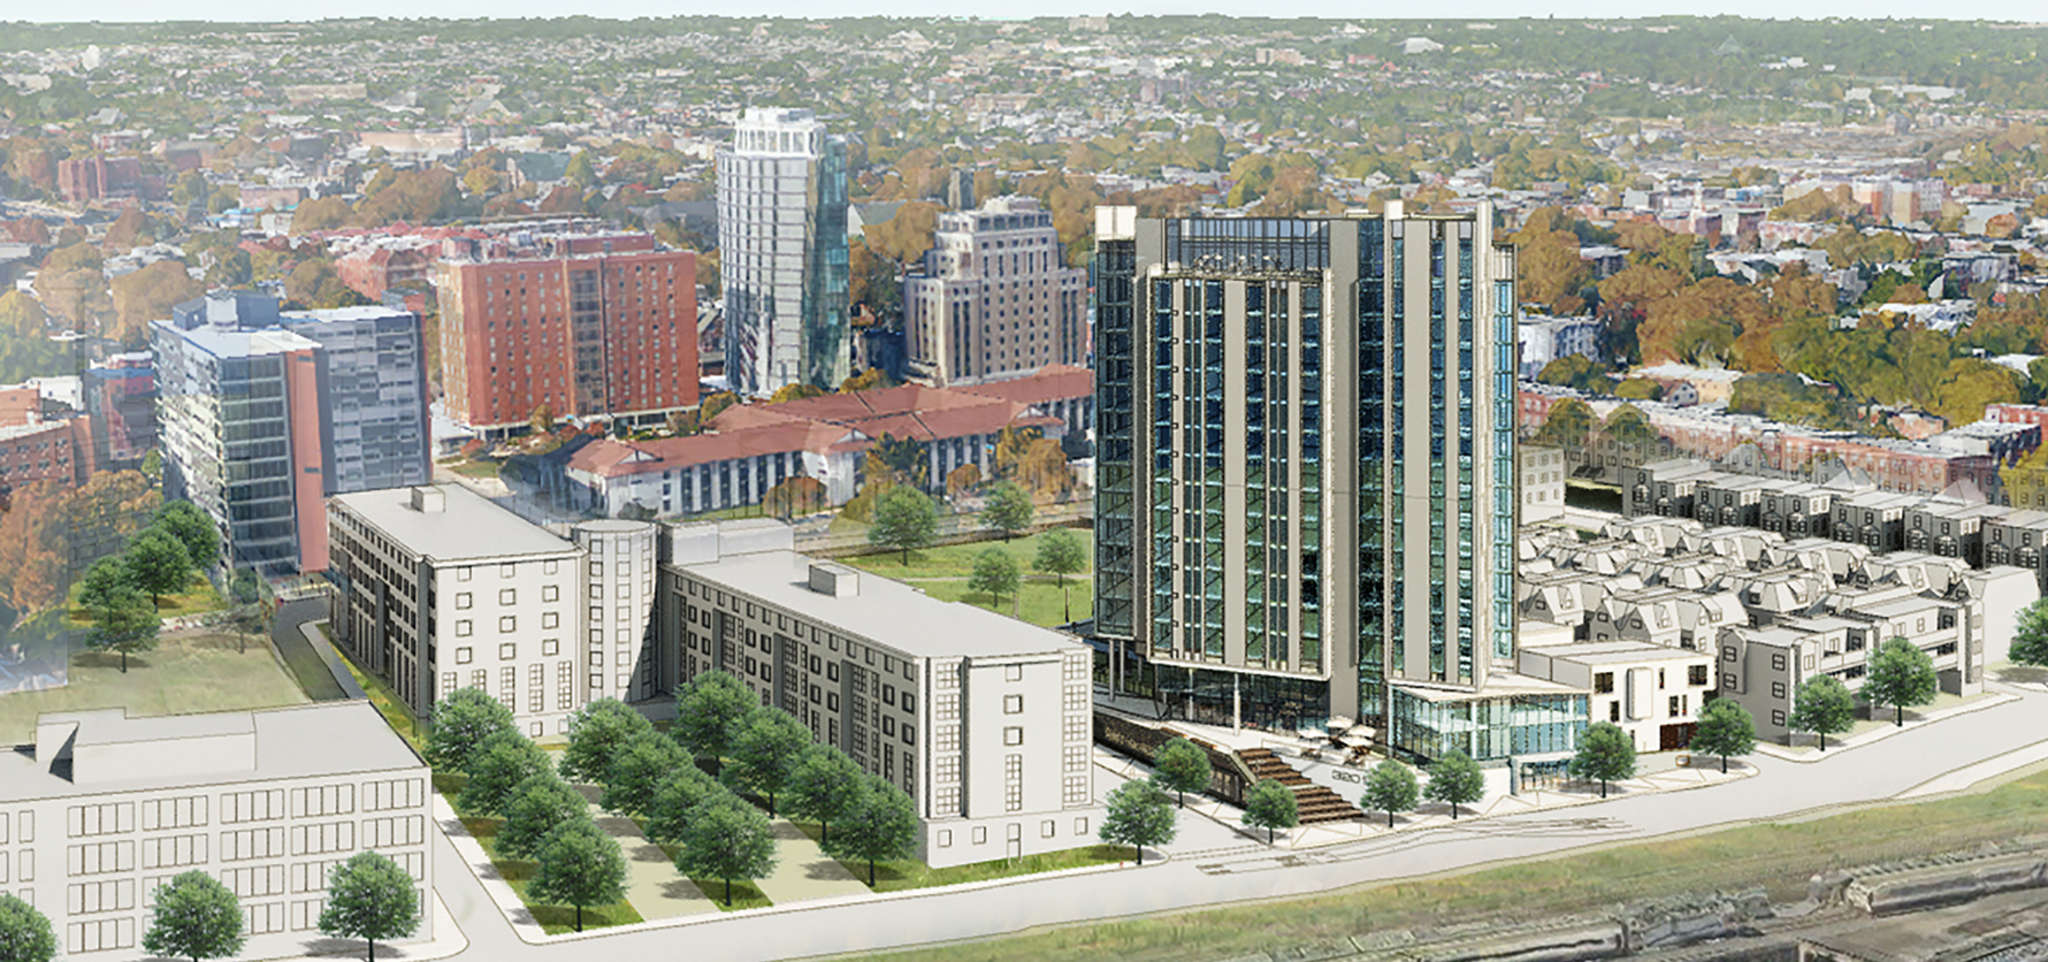 Groundbreaking is scheduled for Wednesday for the $56 million mixed-use project at 3201 Race St. by Radnor Property Group. The project includes office space and a preschool.